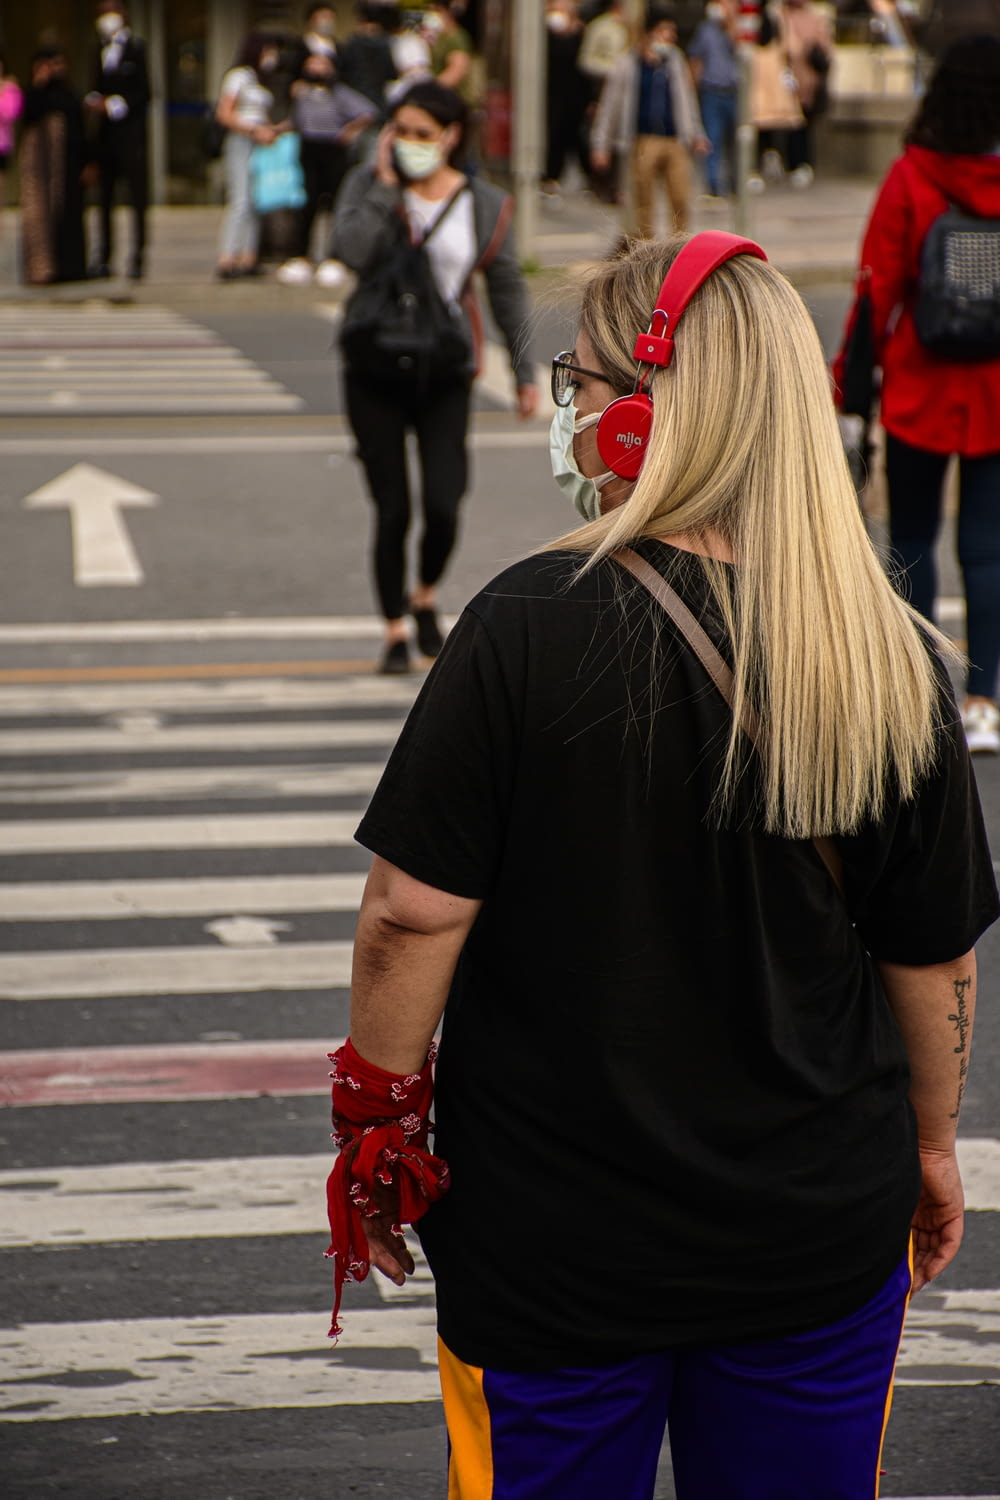 woman in black t-shirt and red boots walking on pedestrian lane during daytime